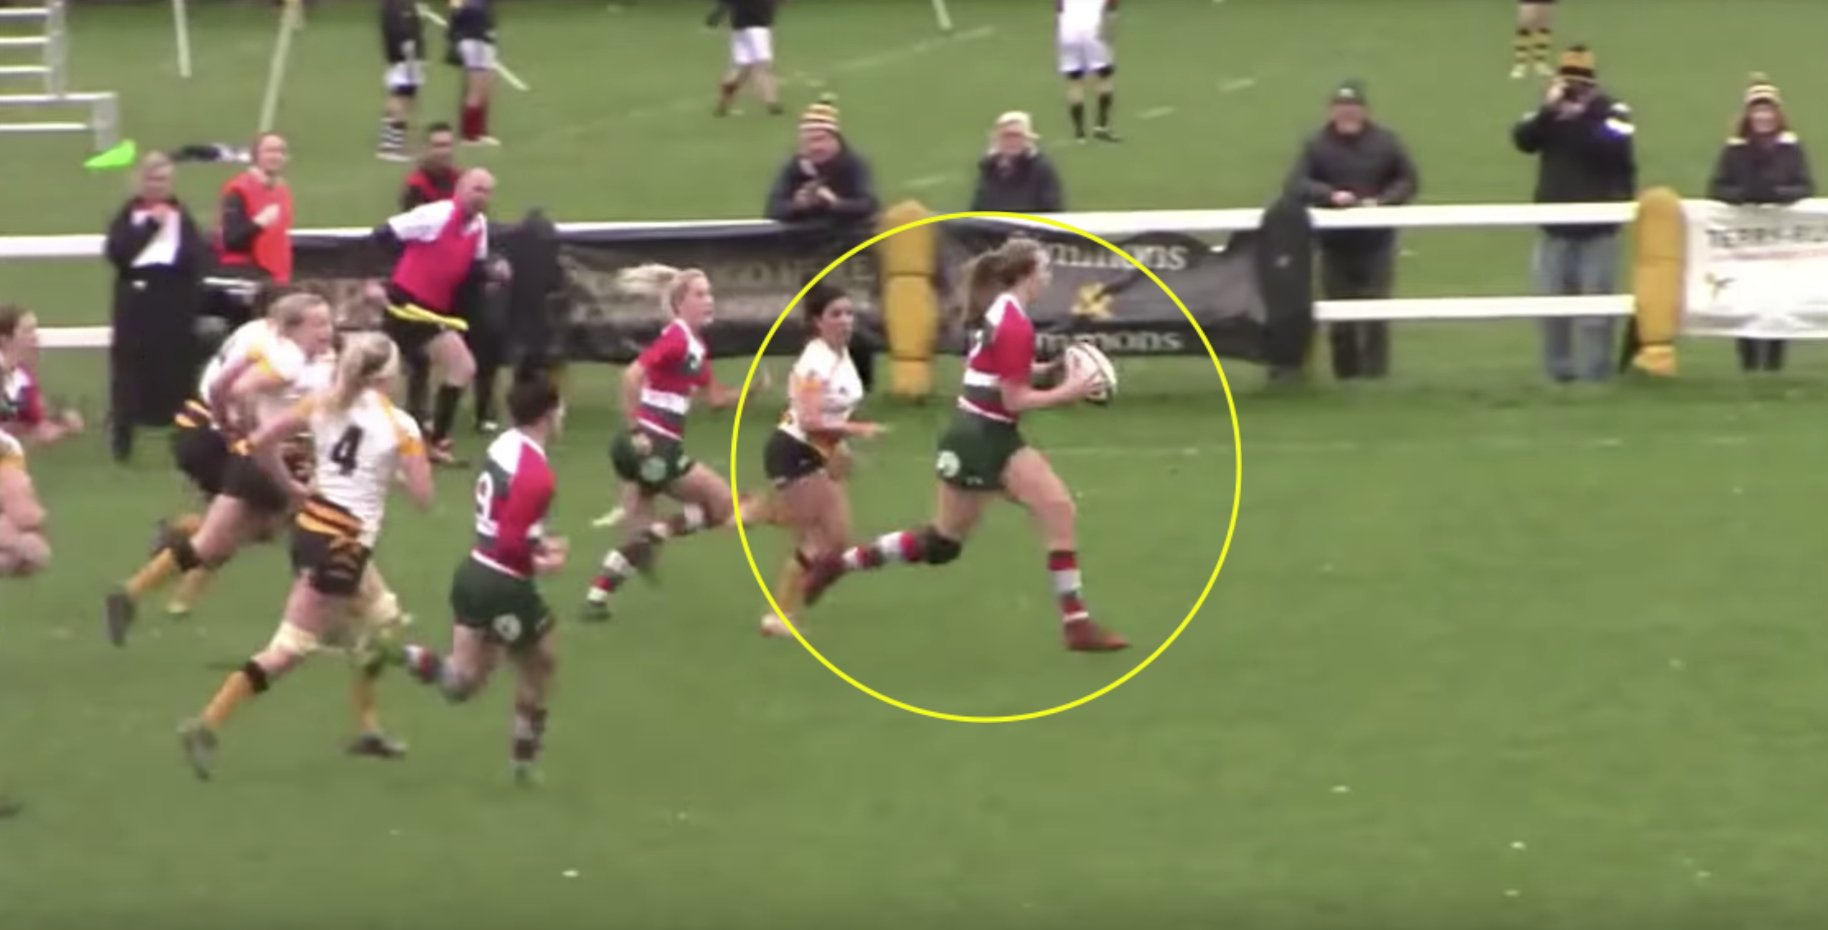 Future England star is dominating EVERYONE in newly released highlight reel